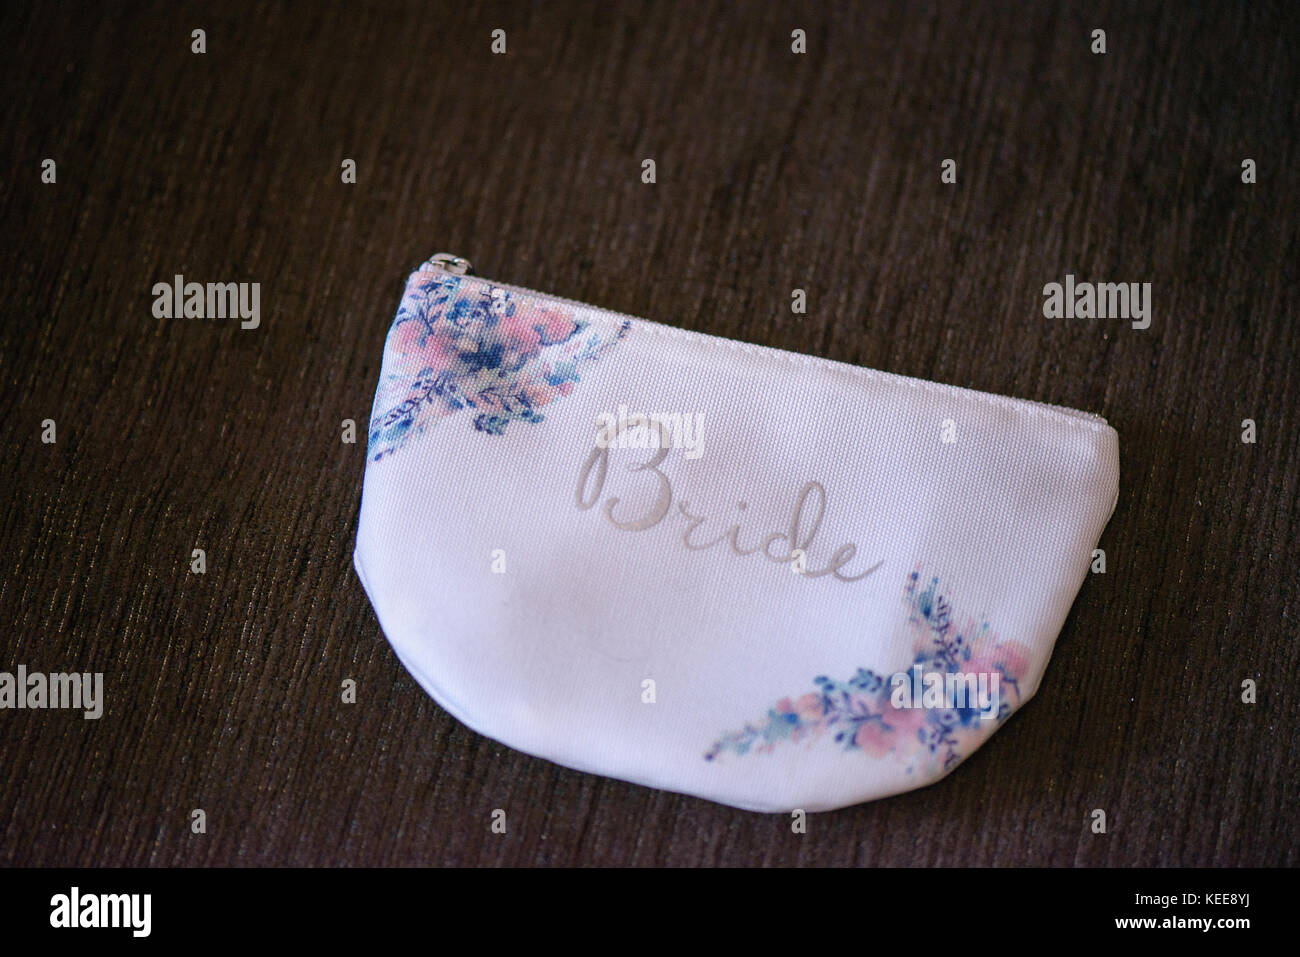 Delicate accessory with floral elements, a bridal purse with embroidered word 'Bride' in the front, against - Stock Image